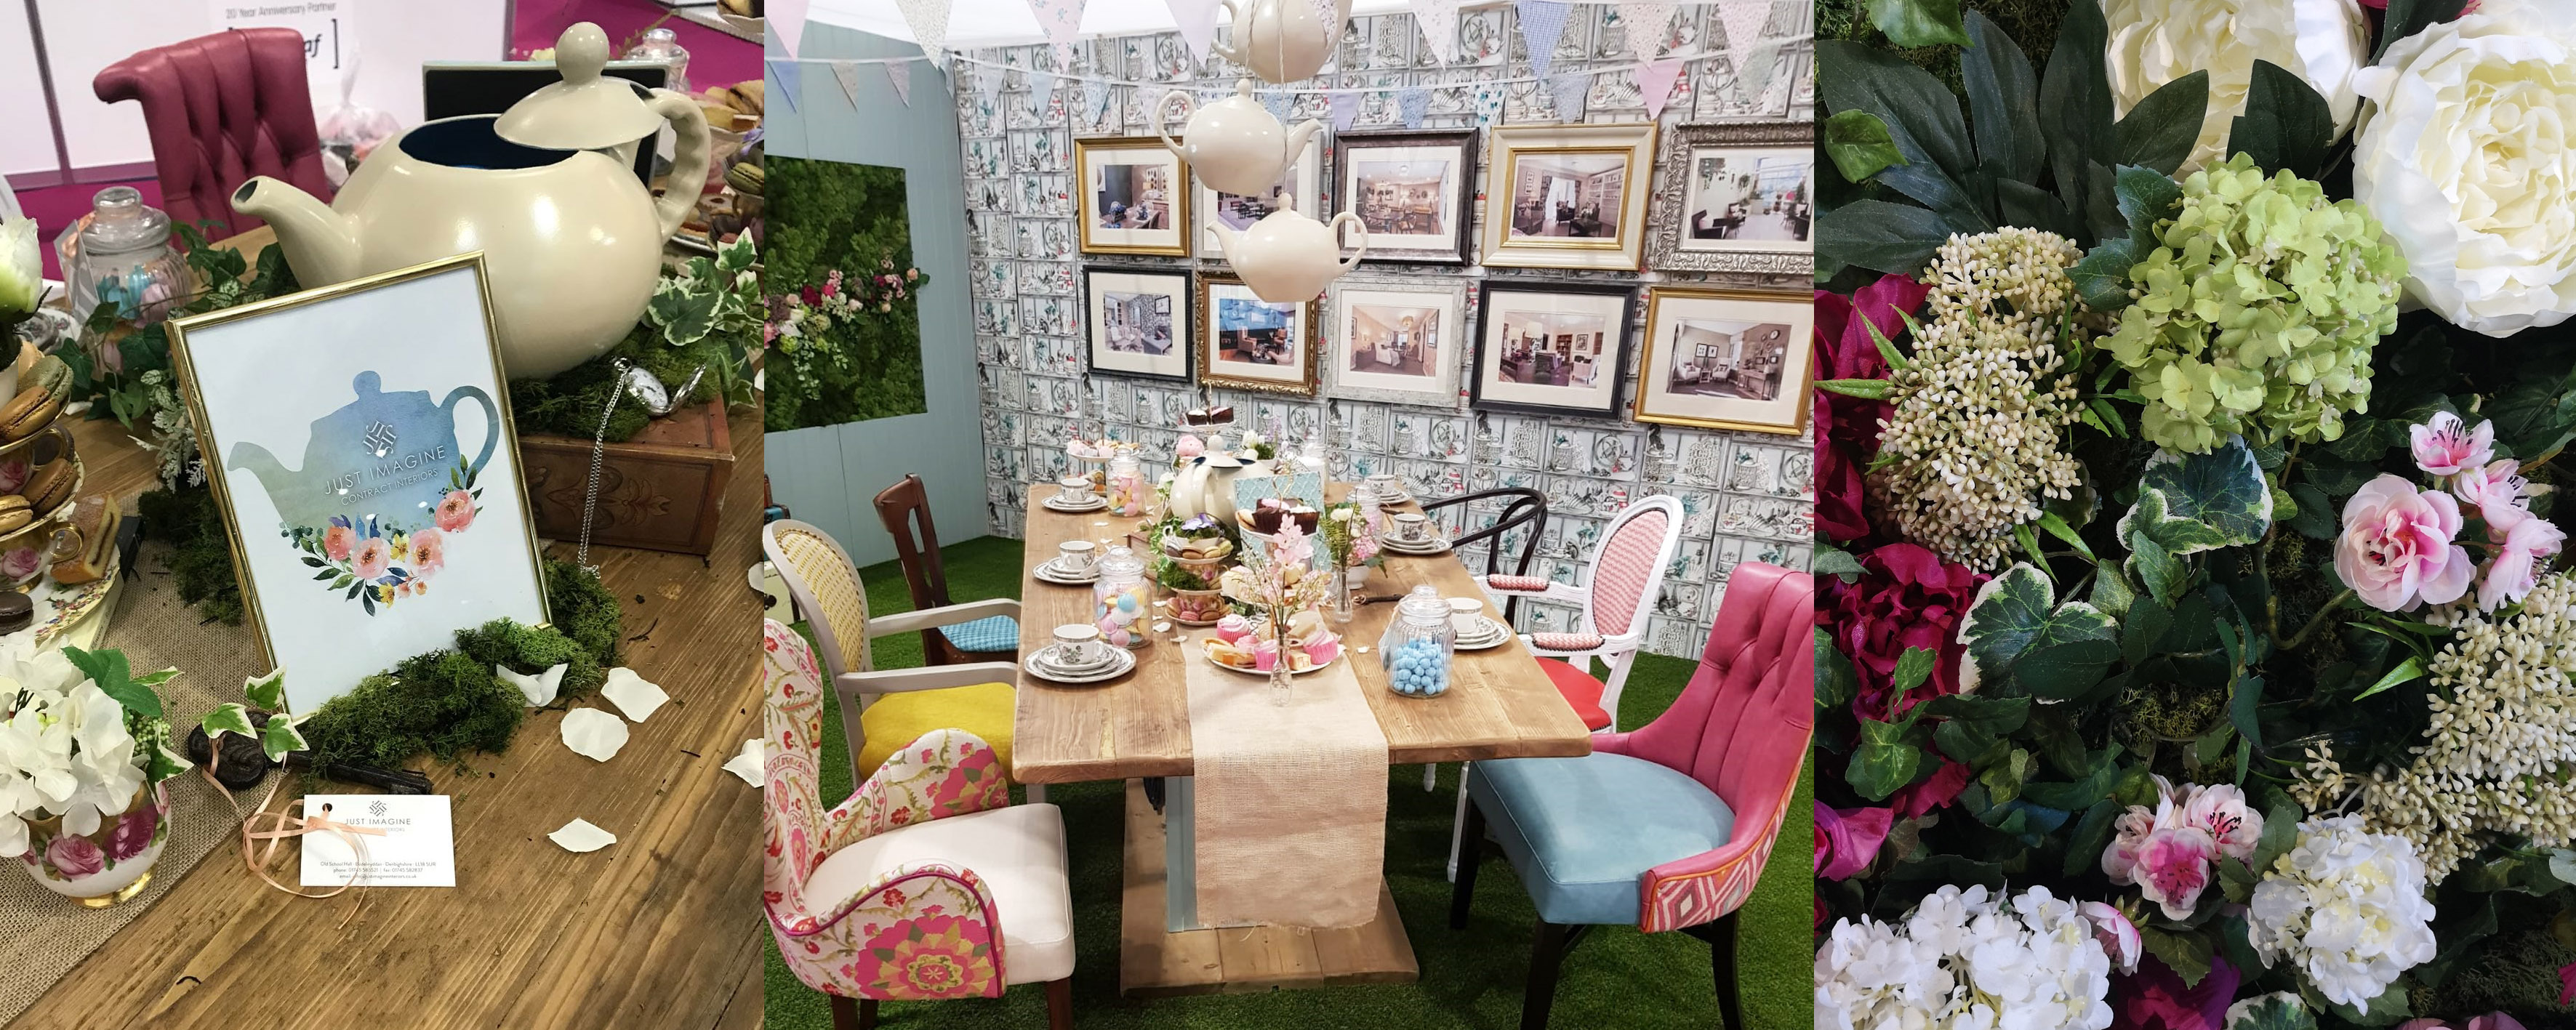 The Care Show 2018